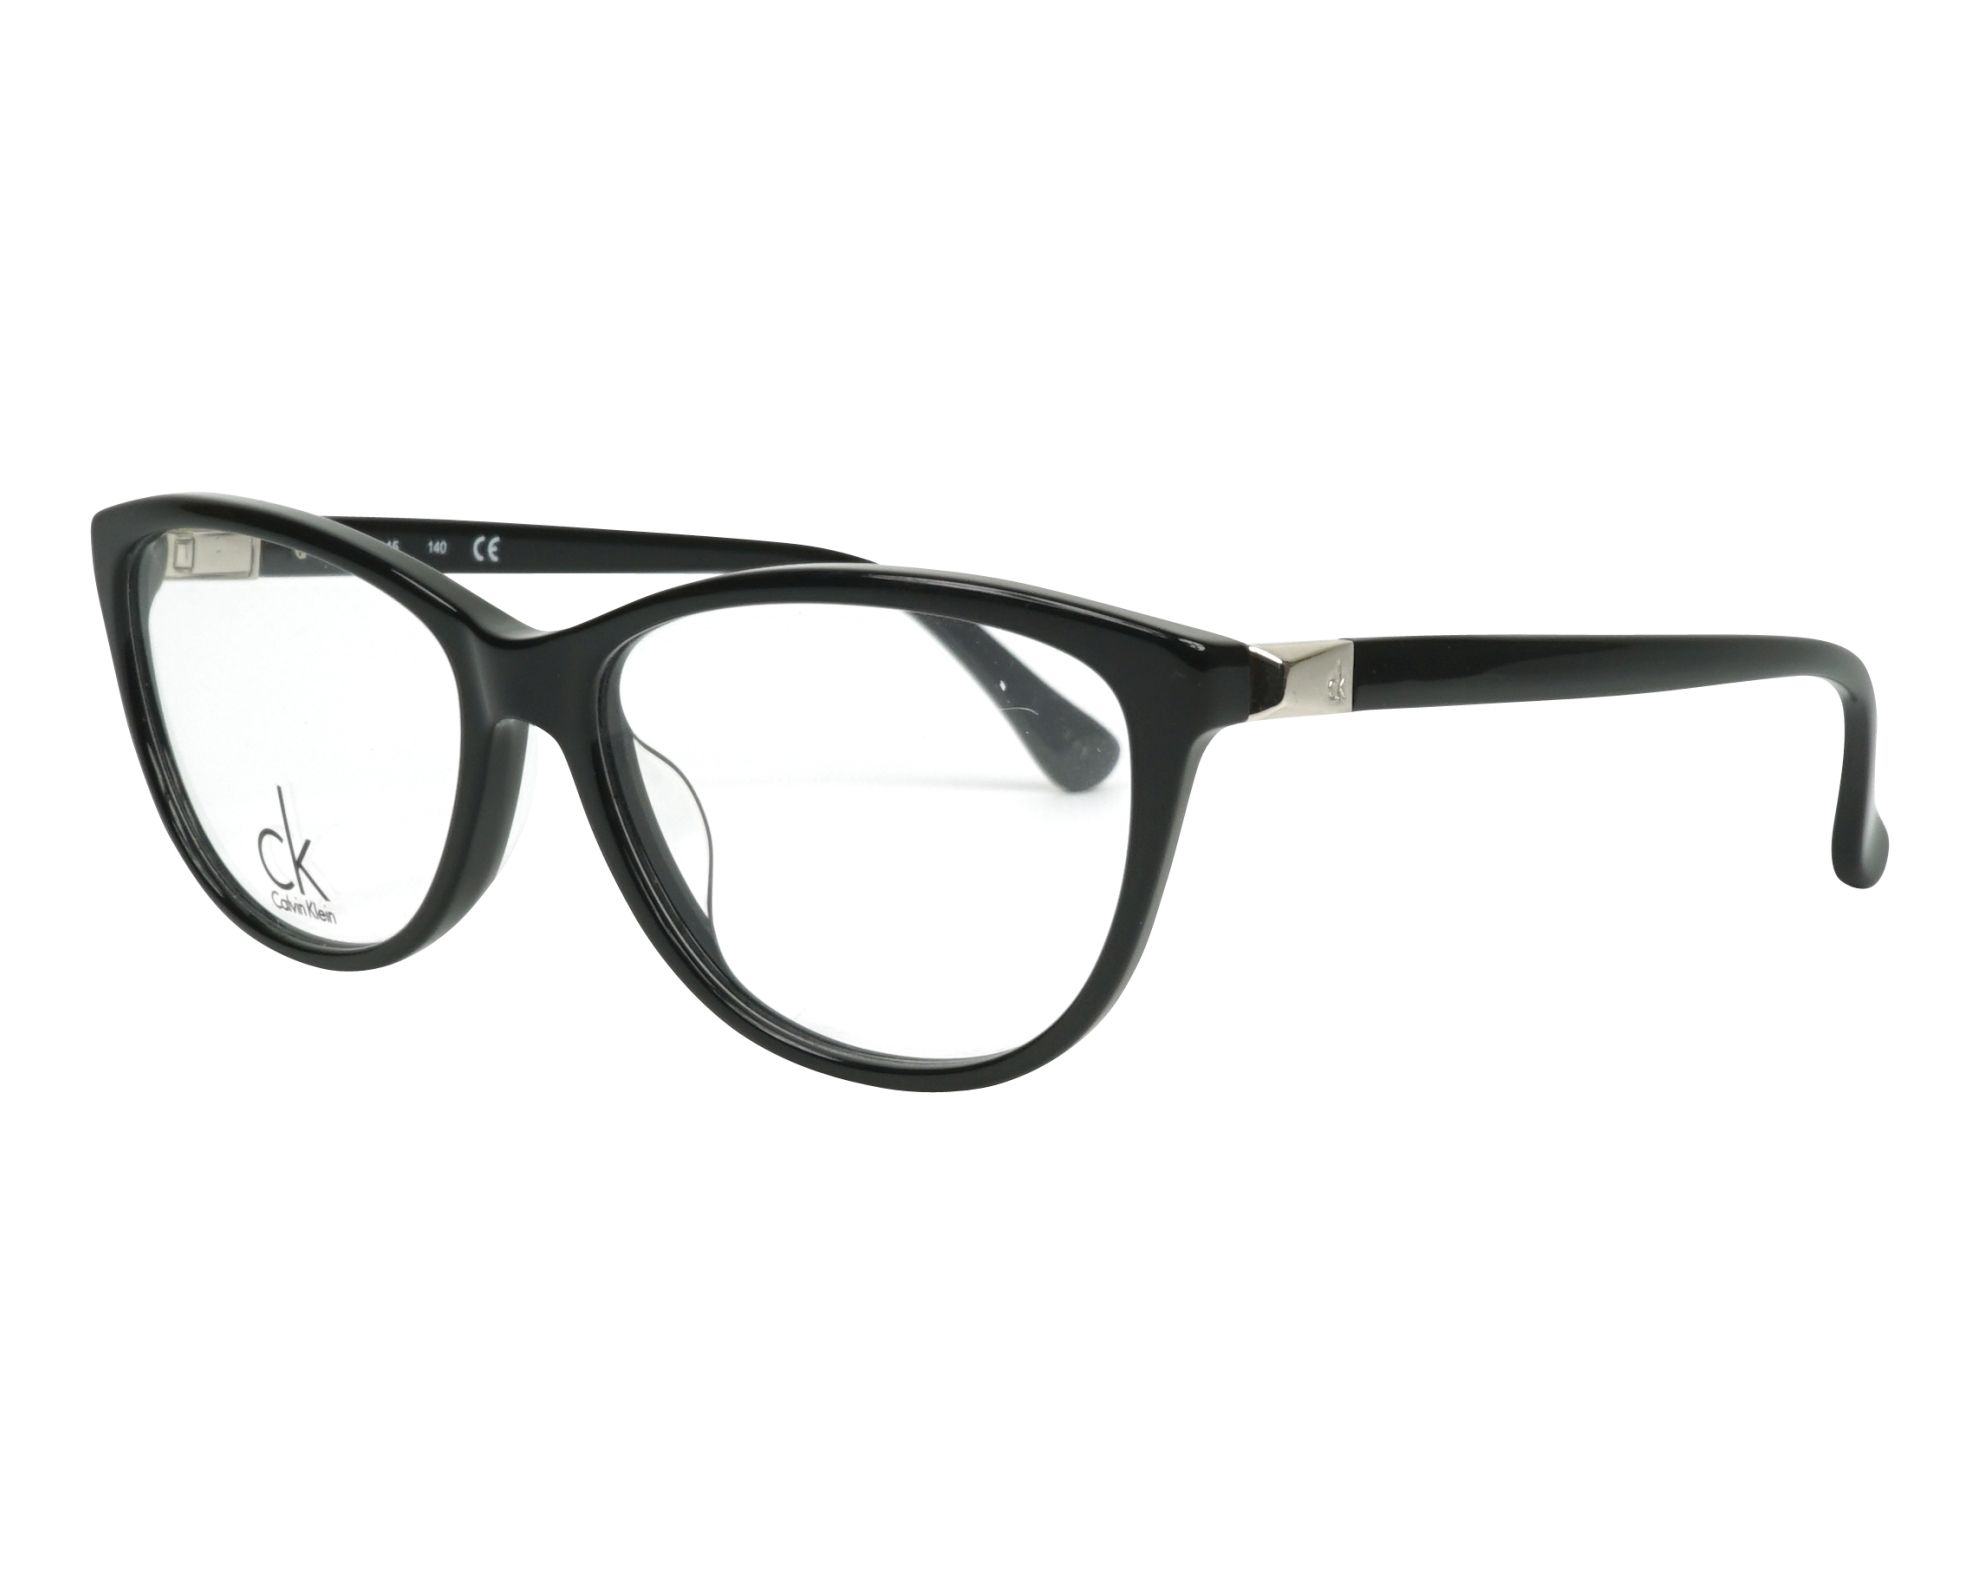 eyeglasses Calvin Klein CK-5814 001 53-15 Black profile view